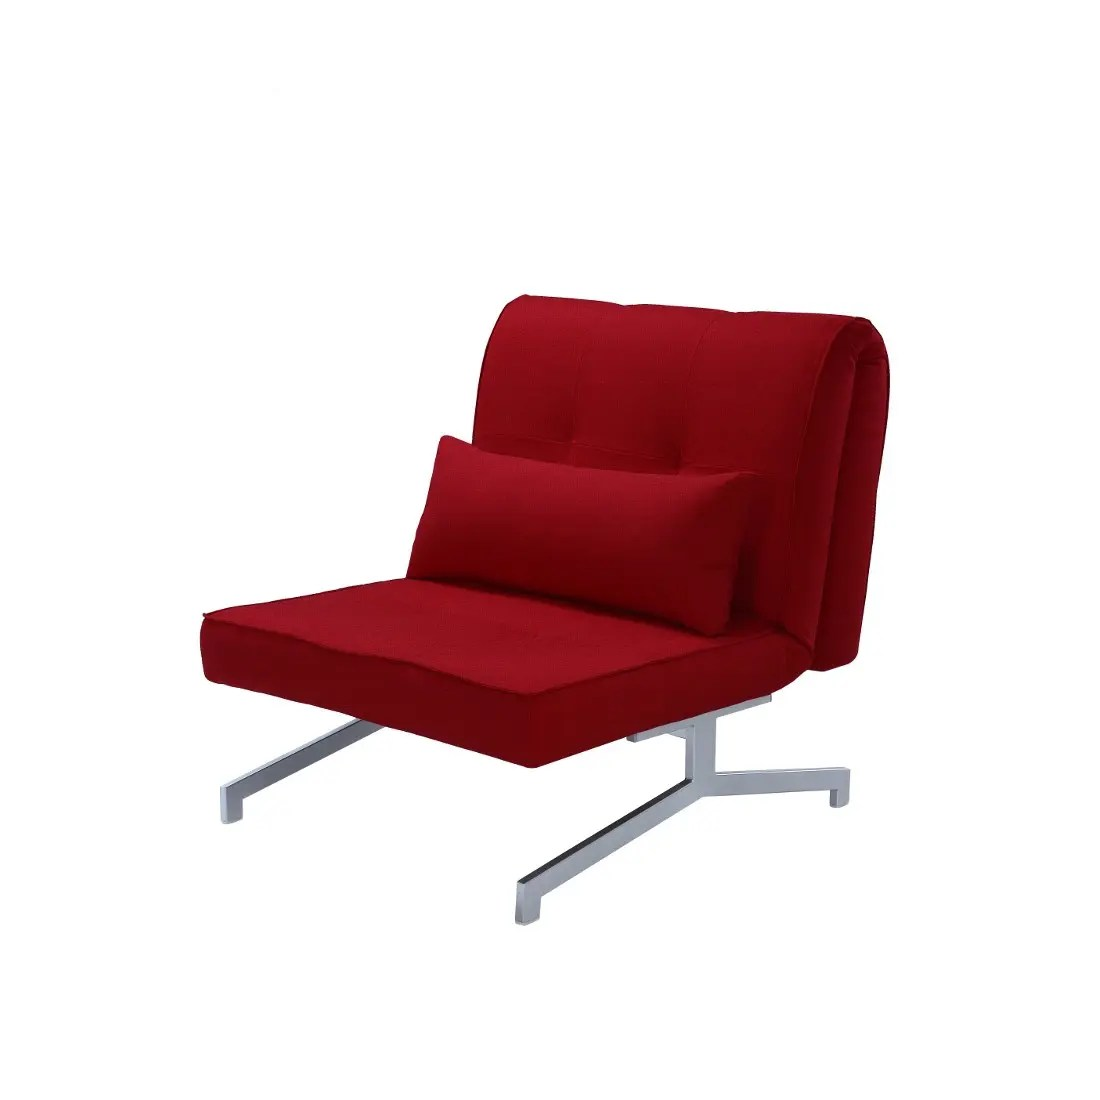 Image Result For Convertible Sleeper Chair